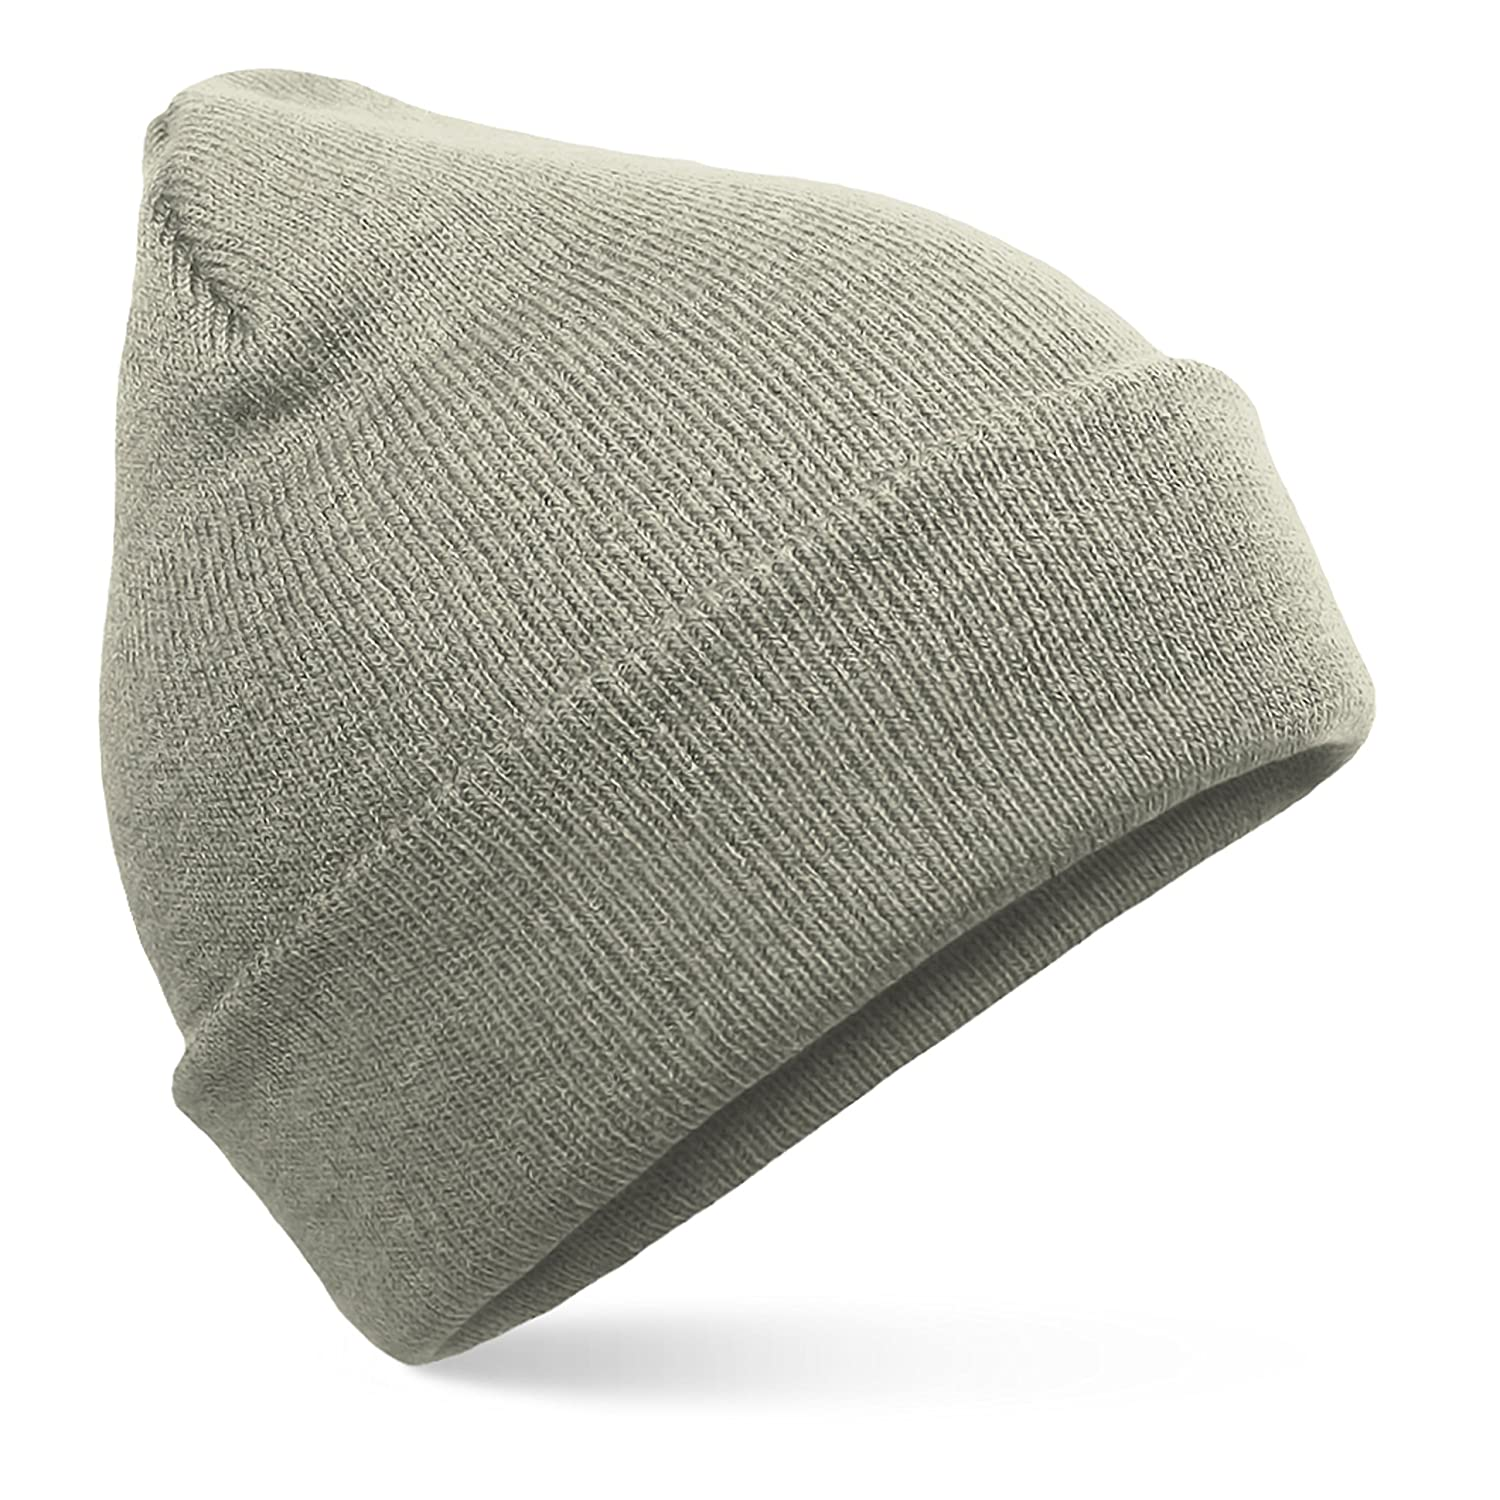 EUROTSHIRTS Beanie Hat In 15 Colours Warm Knitted Beany Cap